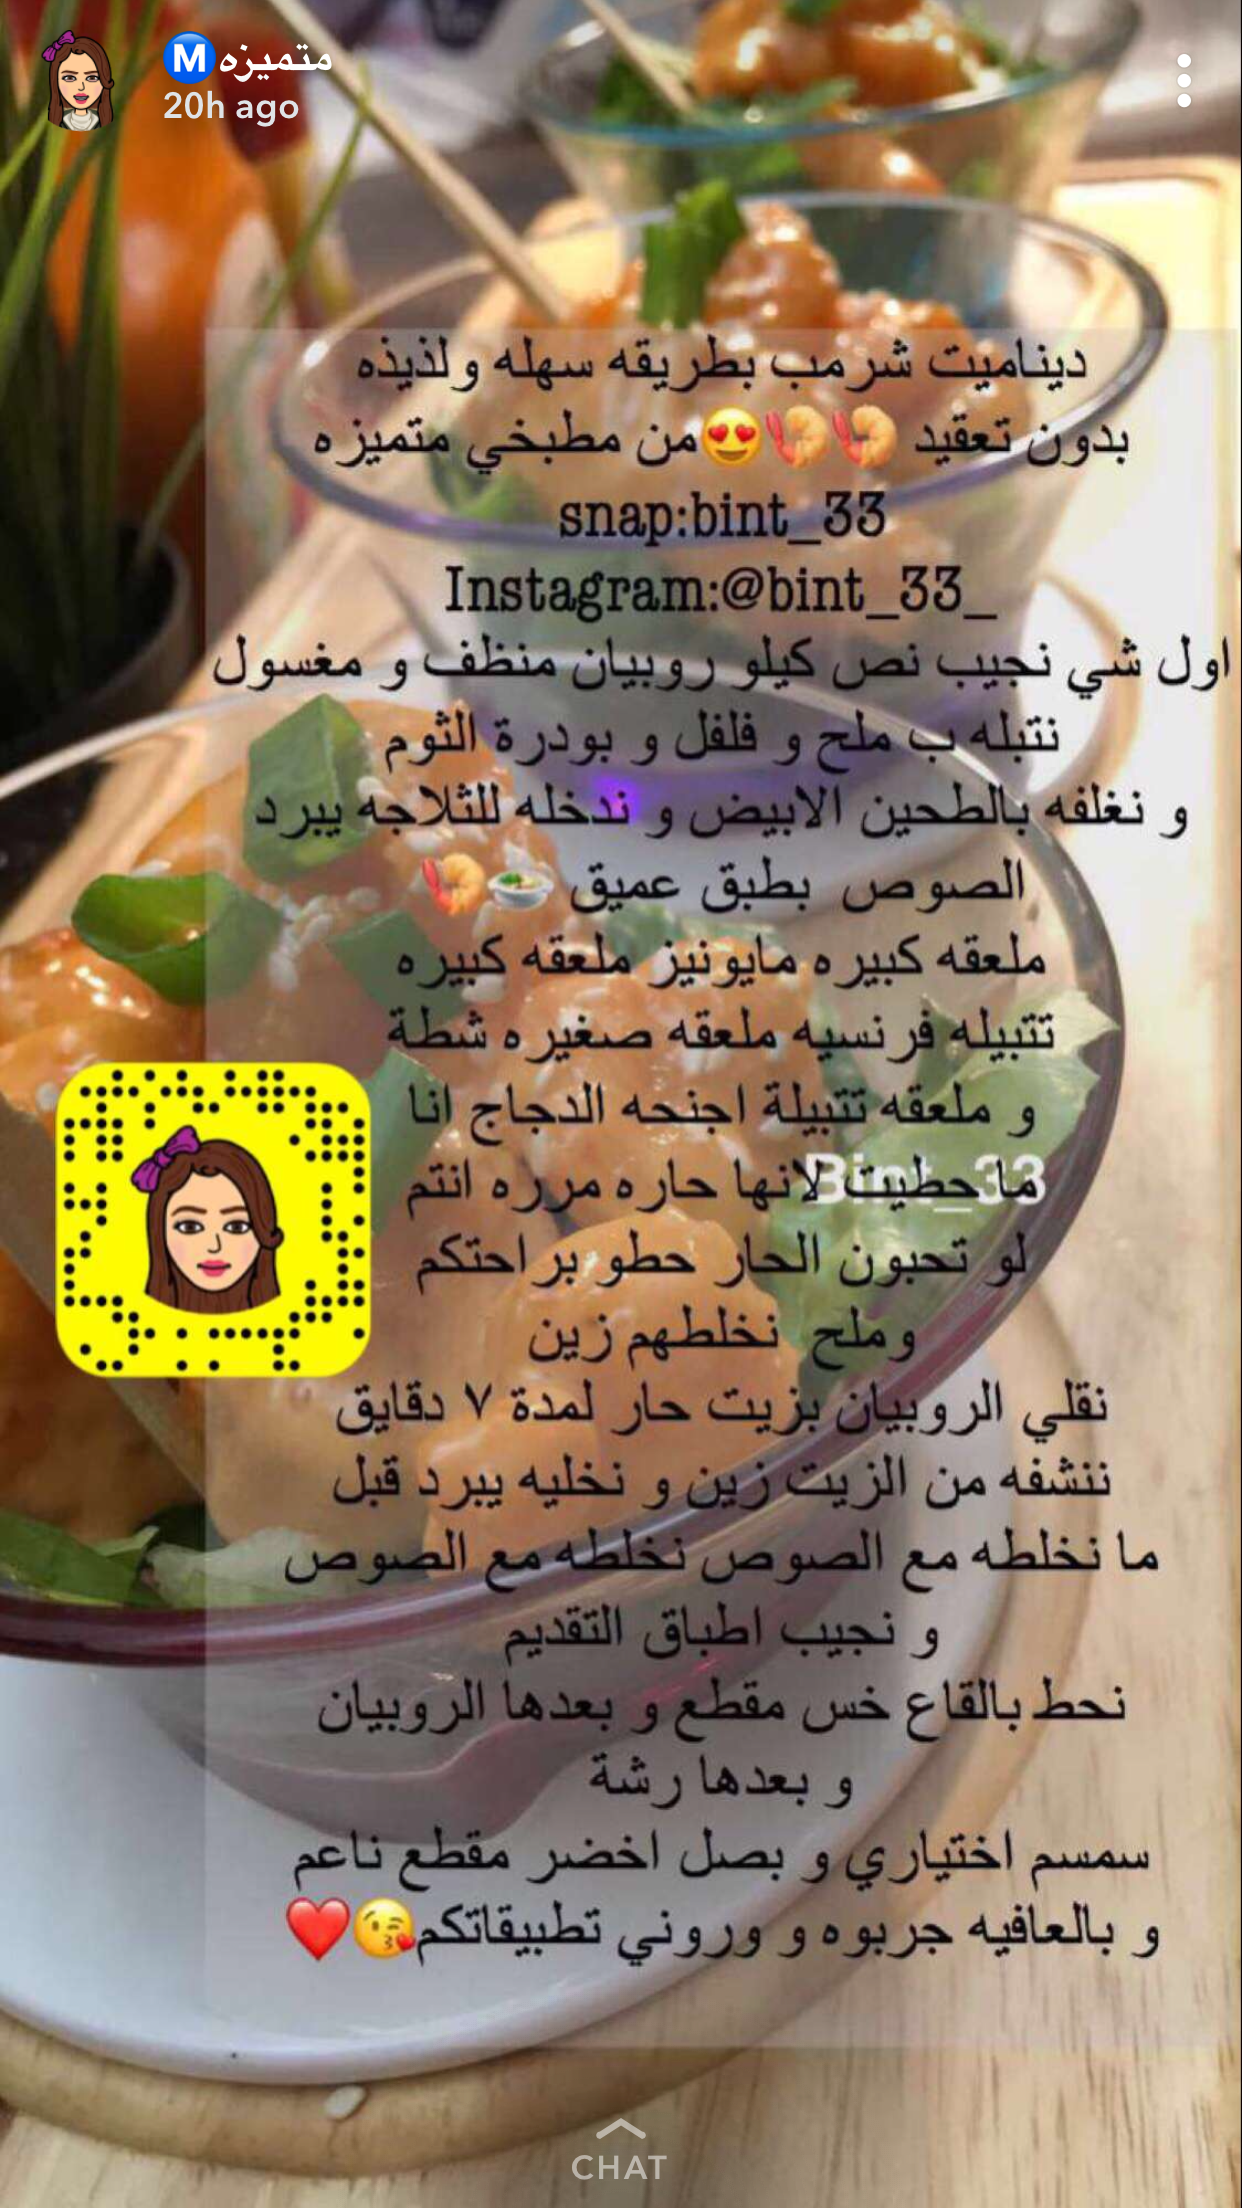 Pin by Haifa on بحري in 2019 | Cooking recipes, Arabic food, Cooking